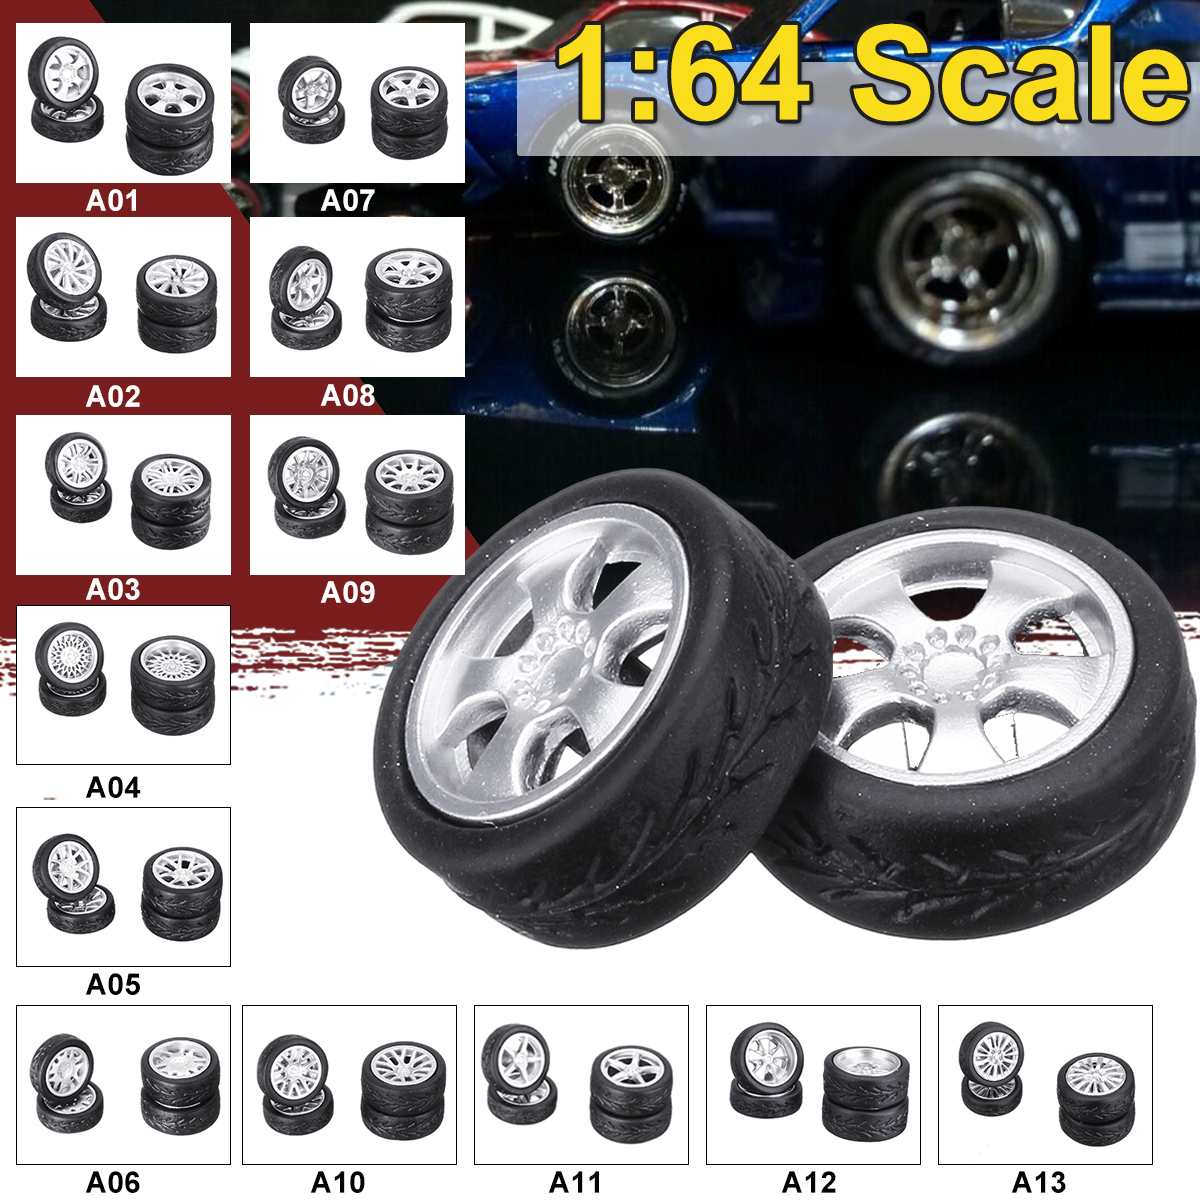 4 Pcs/set 1:64 Model Modified Tire Diecasts Alloy Wheel Tire Rubber Toy Vehicles Model Car Accessories 2 Size Tire